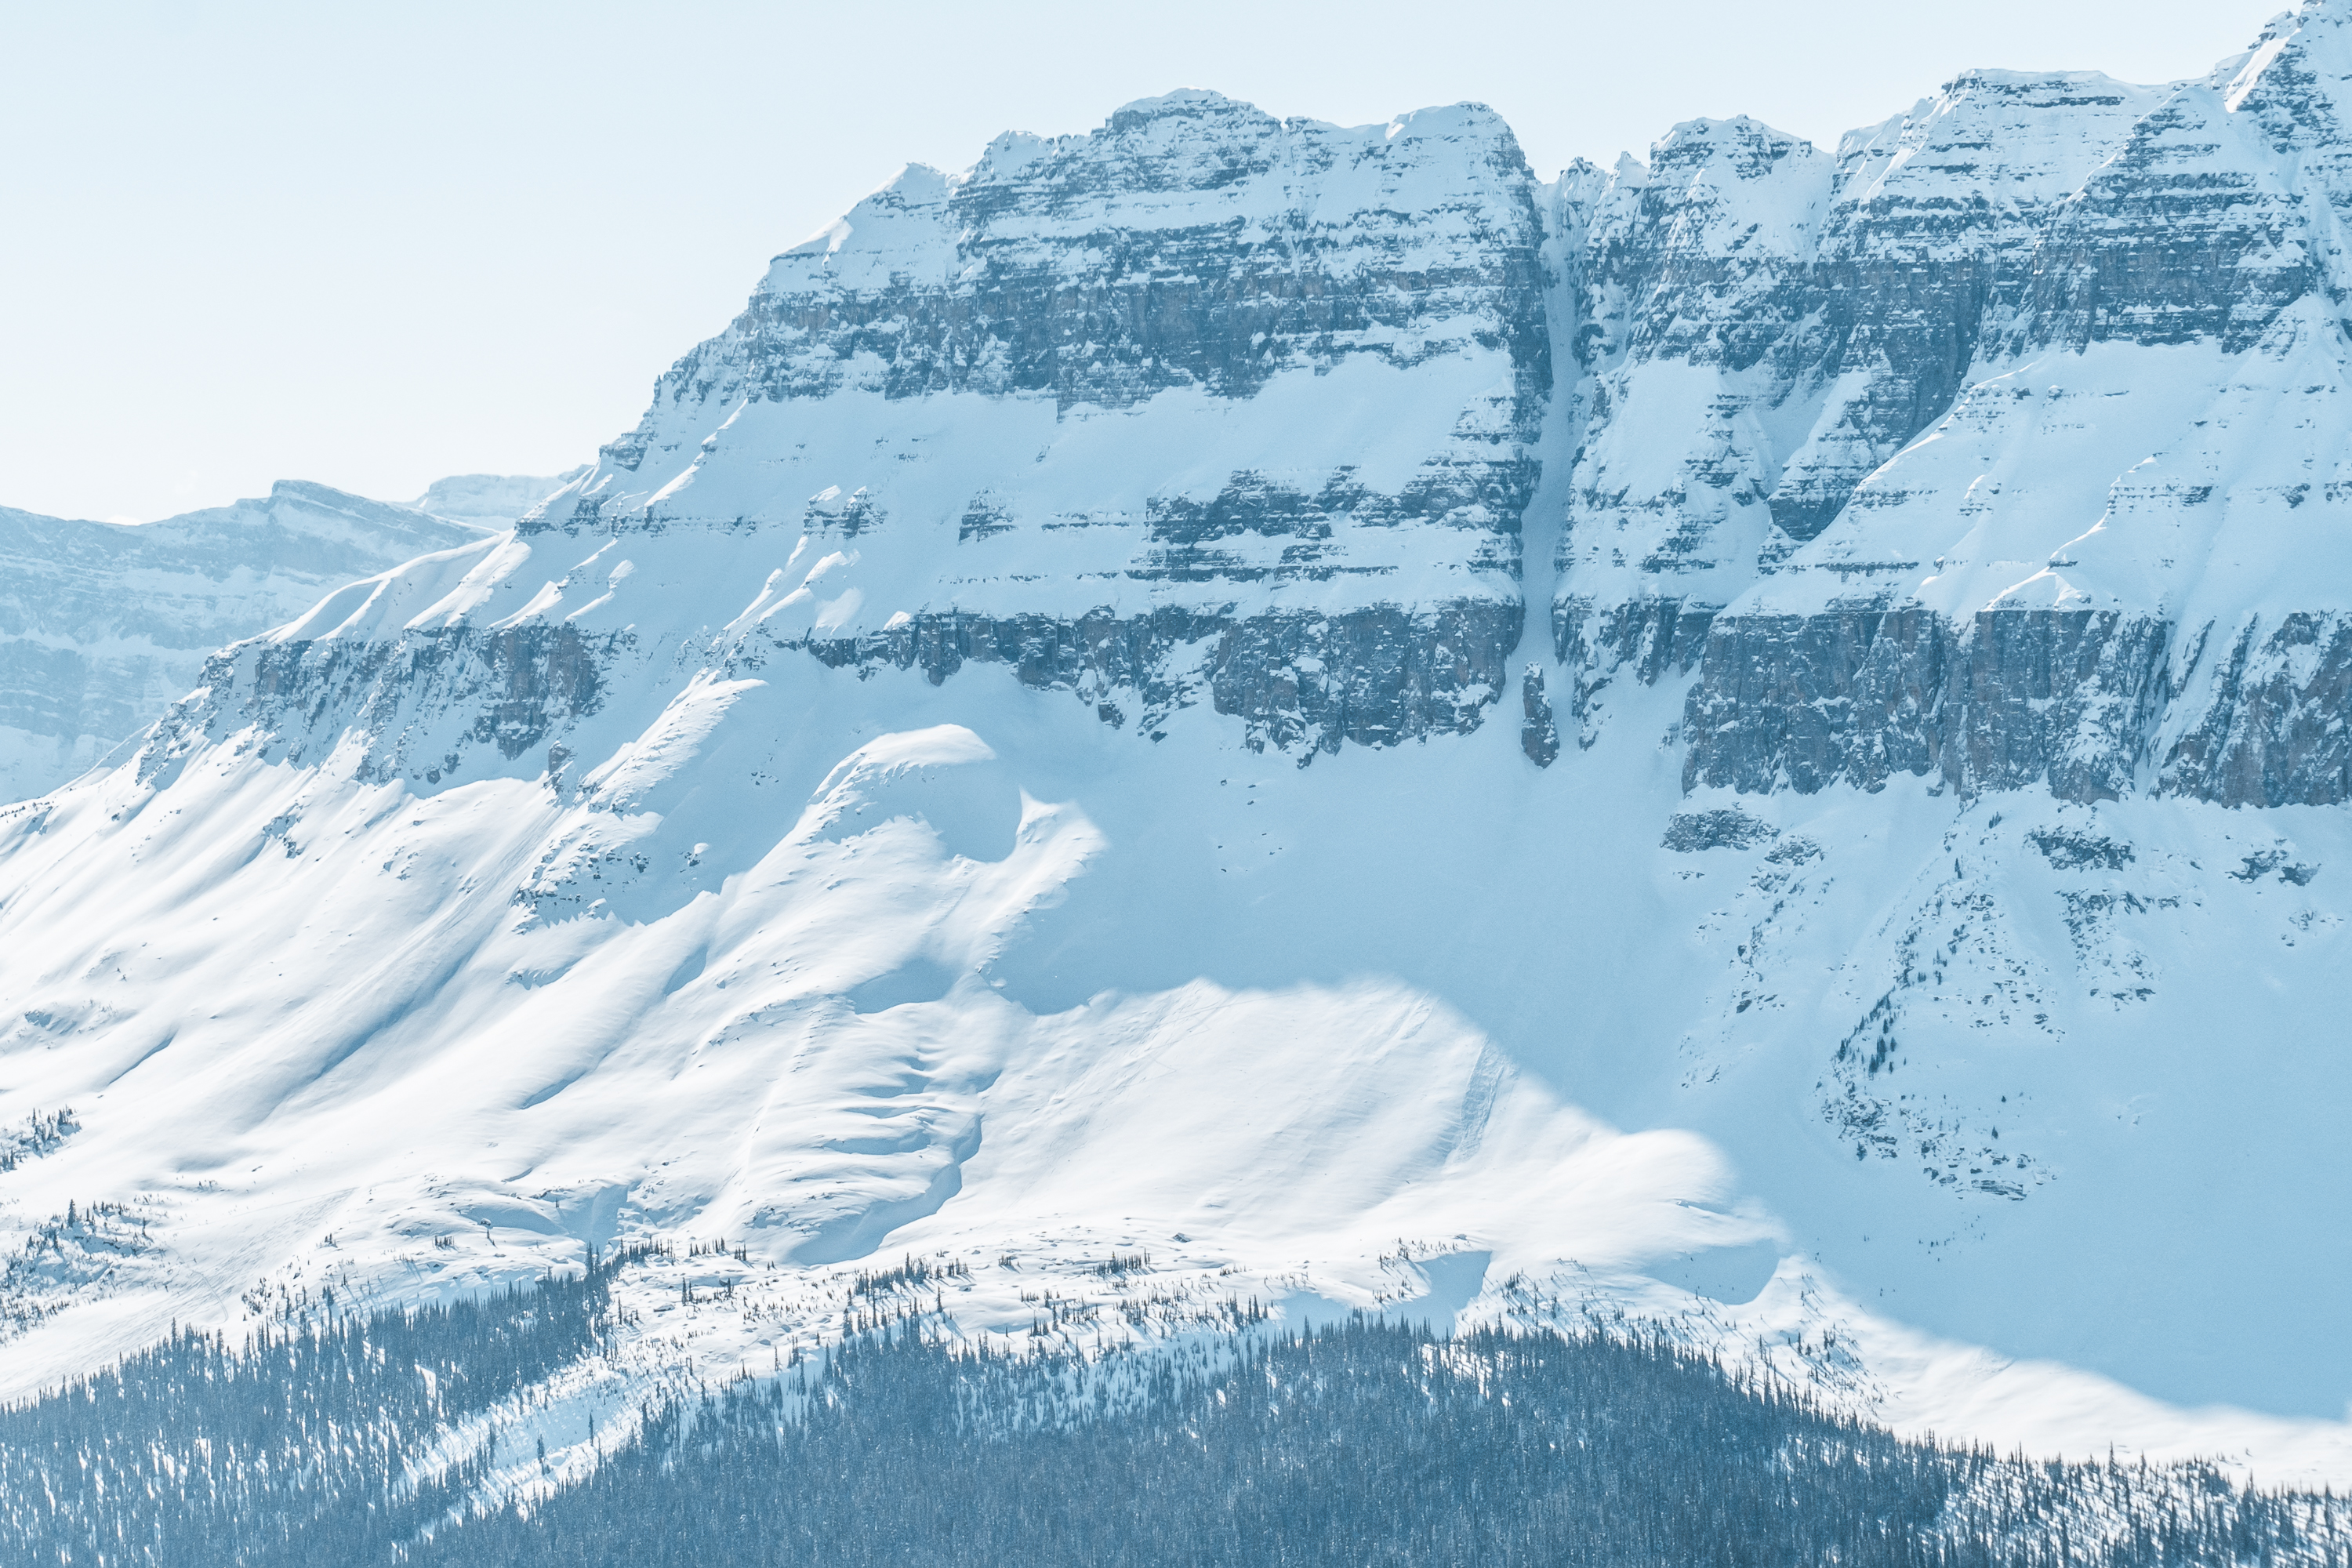 The grand daddy couloir from Dolomite Shoulder on the icefields parkway